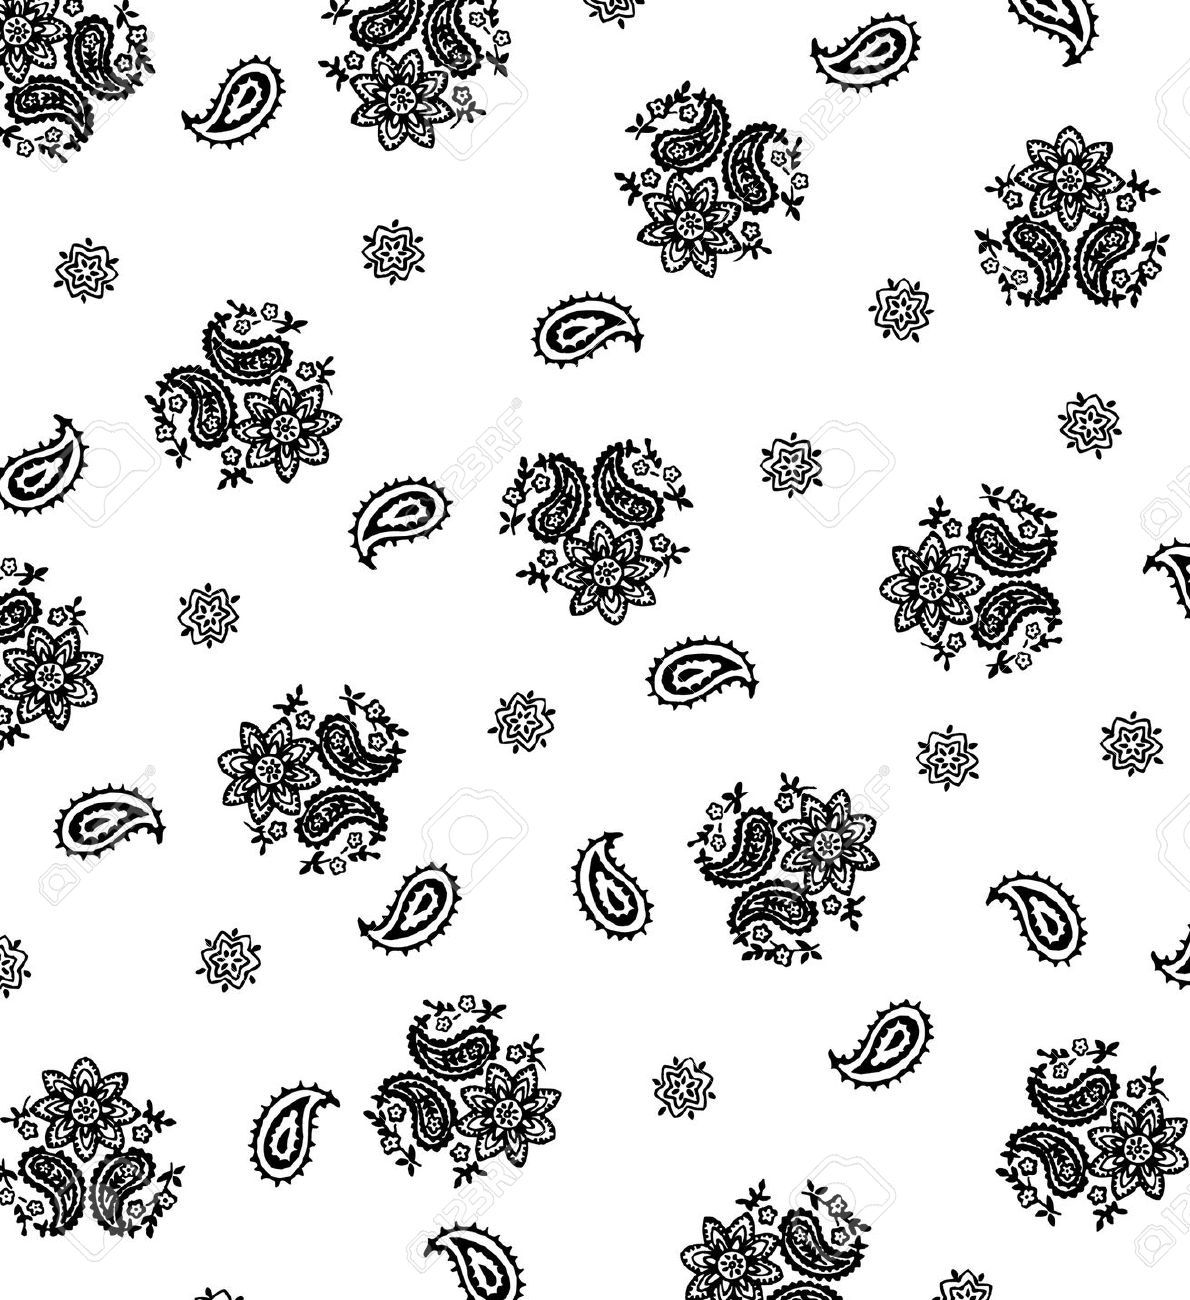 Bandana clipart black and white, Bandana black and white.